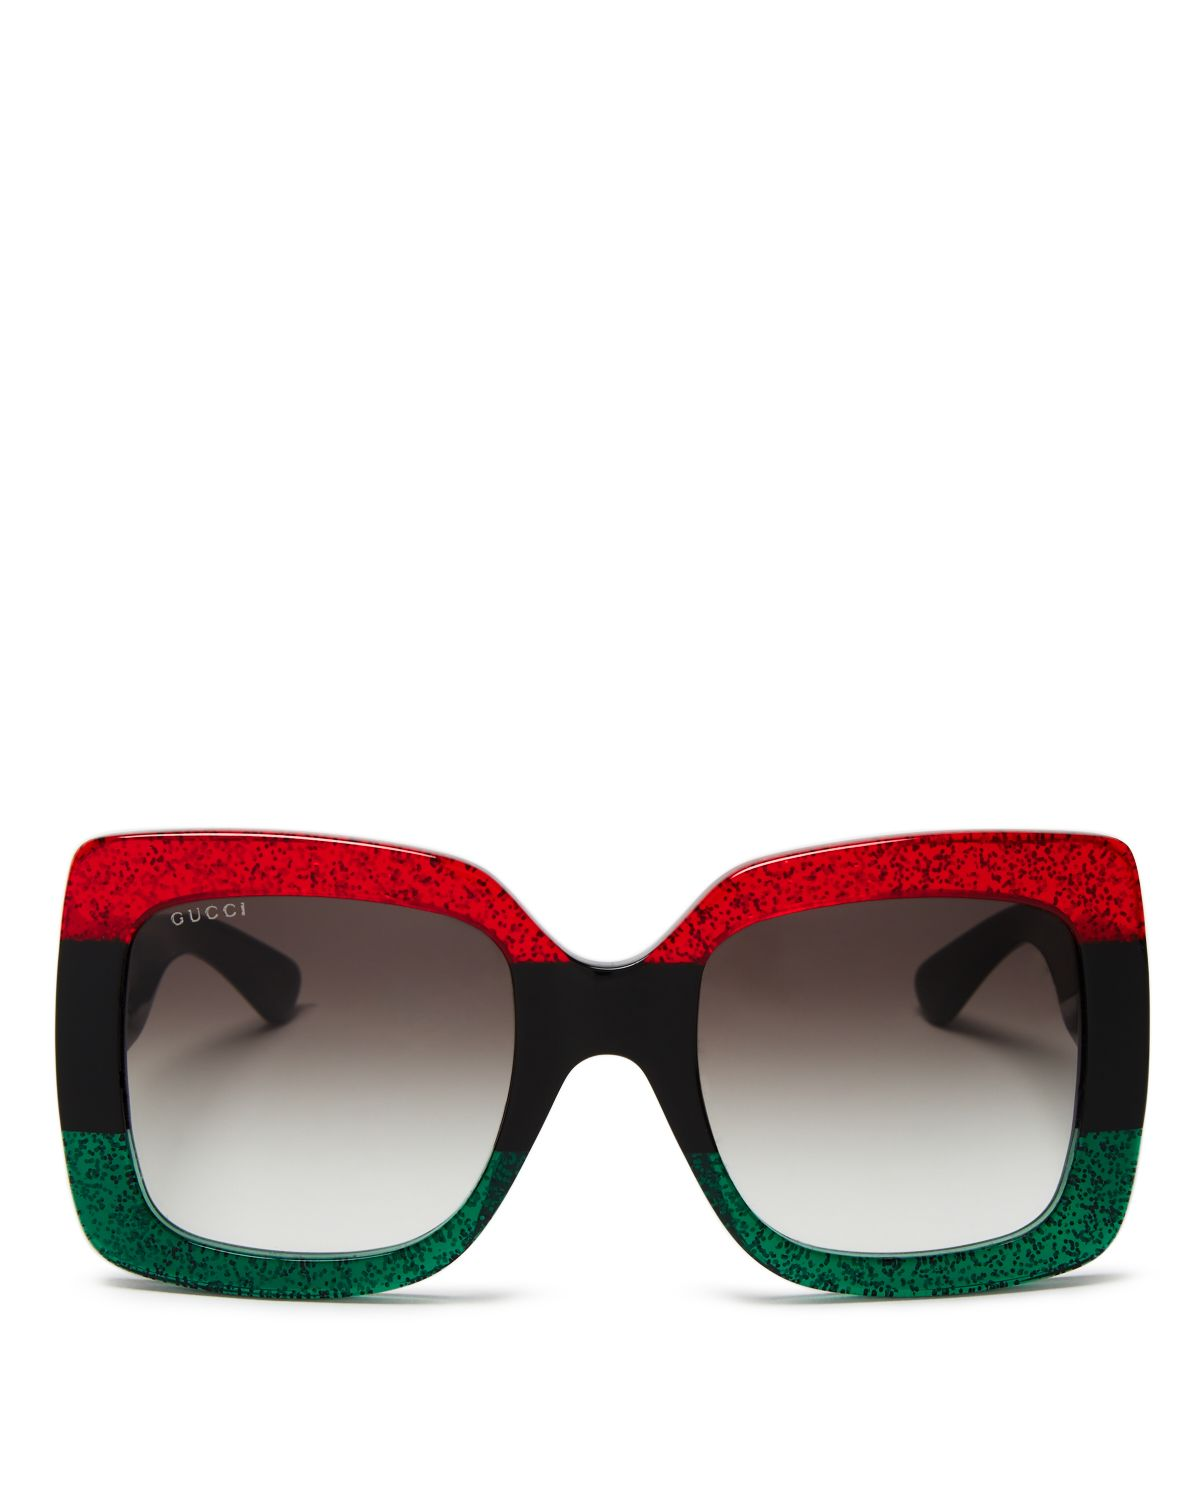 Urban Web Block Oversized Square Sunglasses, 51mm by Gucci